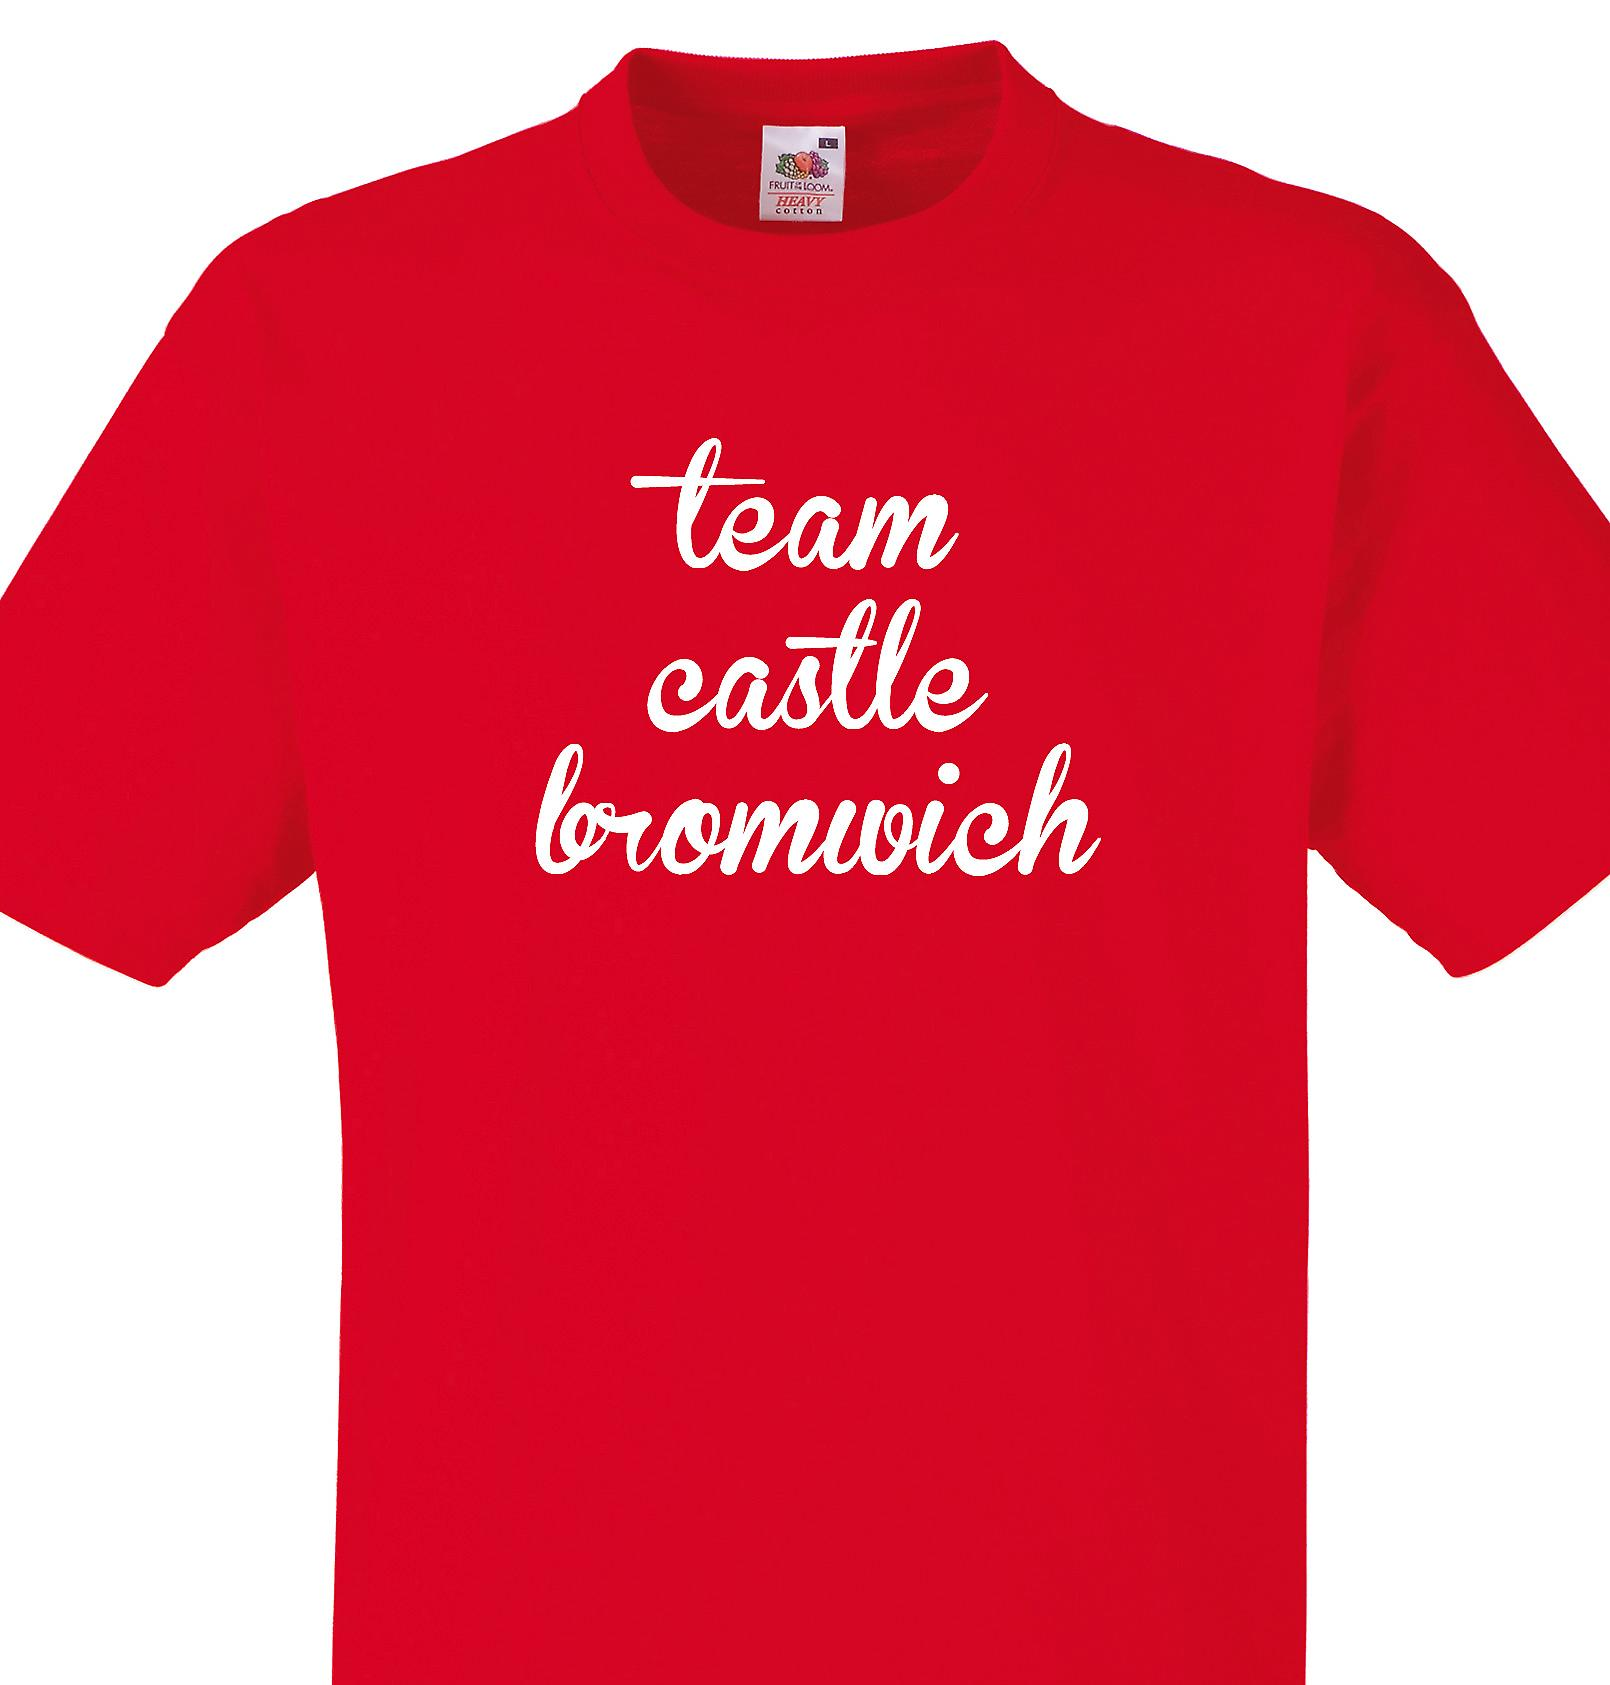 Team Castle bromwich Red T shirt